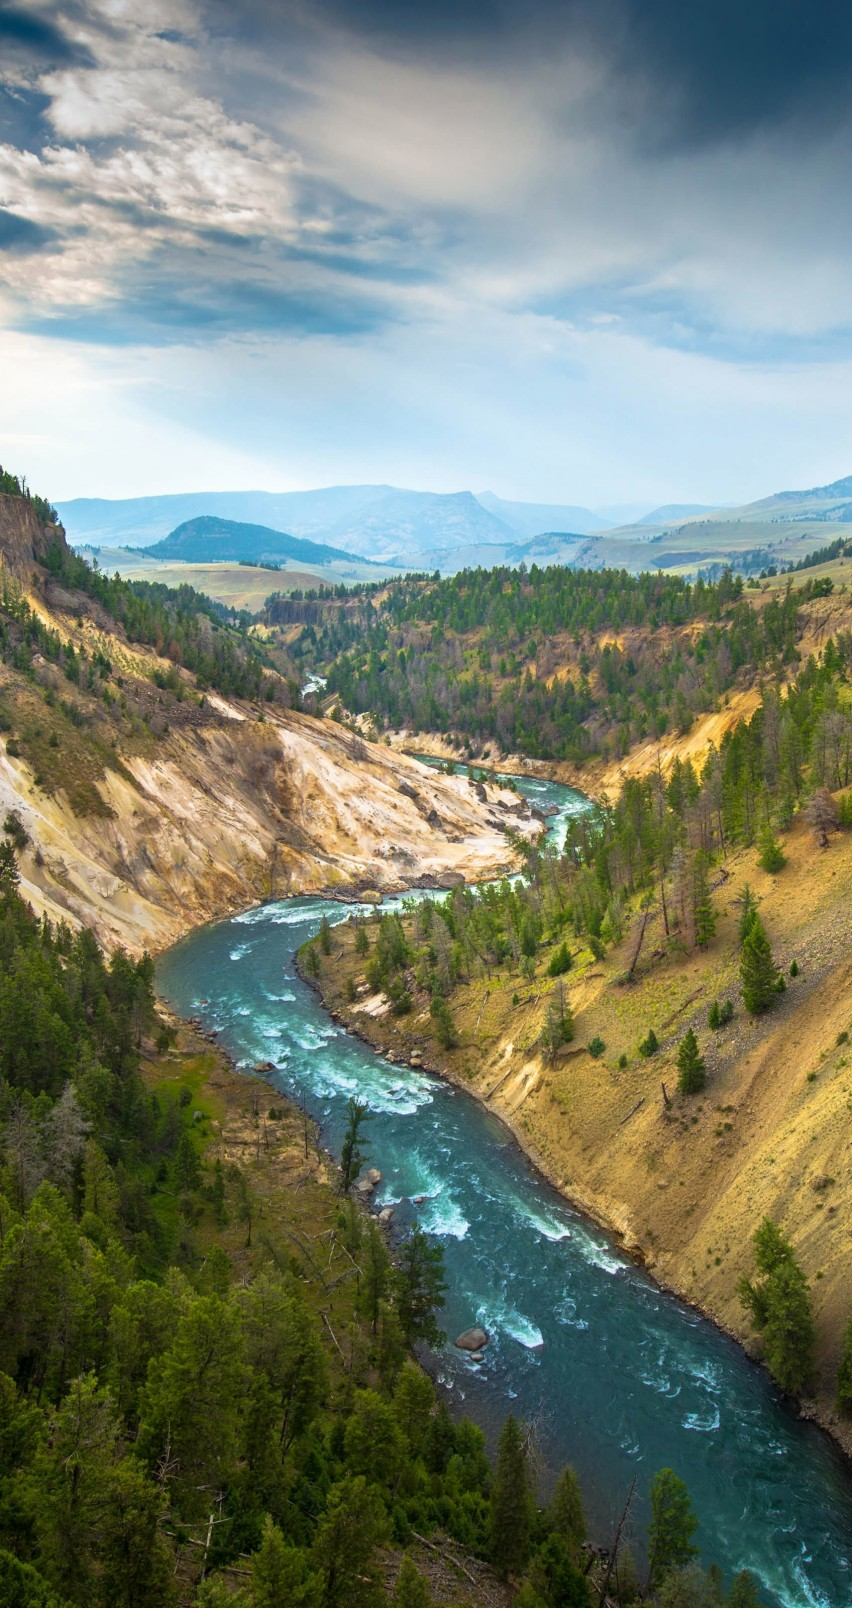 The River, Grand Canyon of Yellowstone National Park, USA Wallpaper for Apple iPhone 6 / 6s